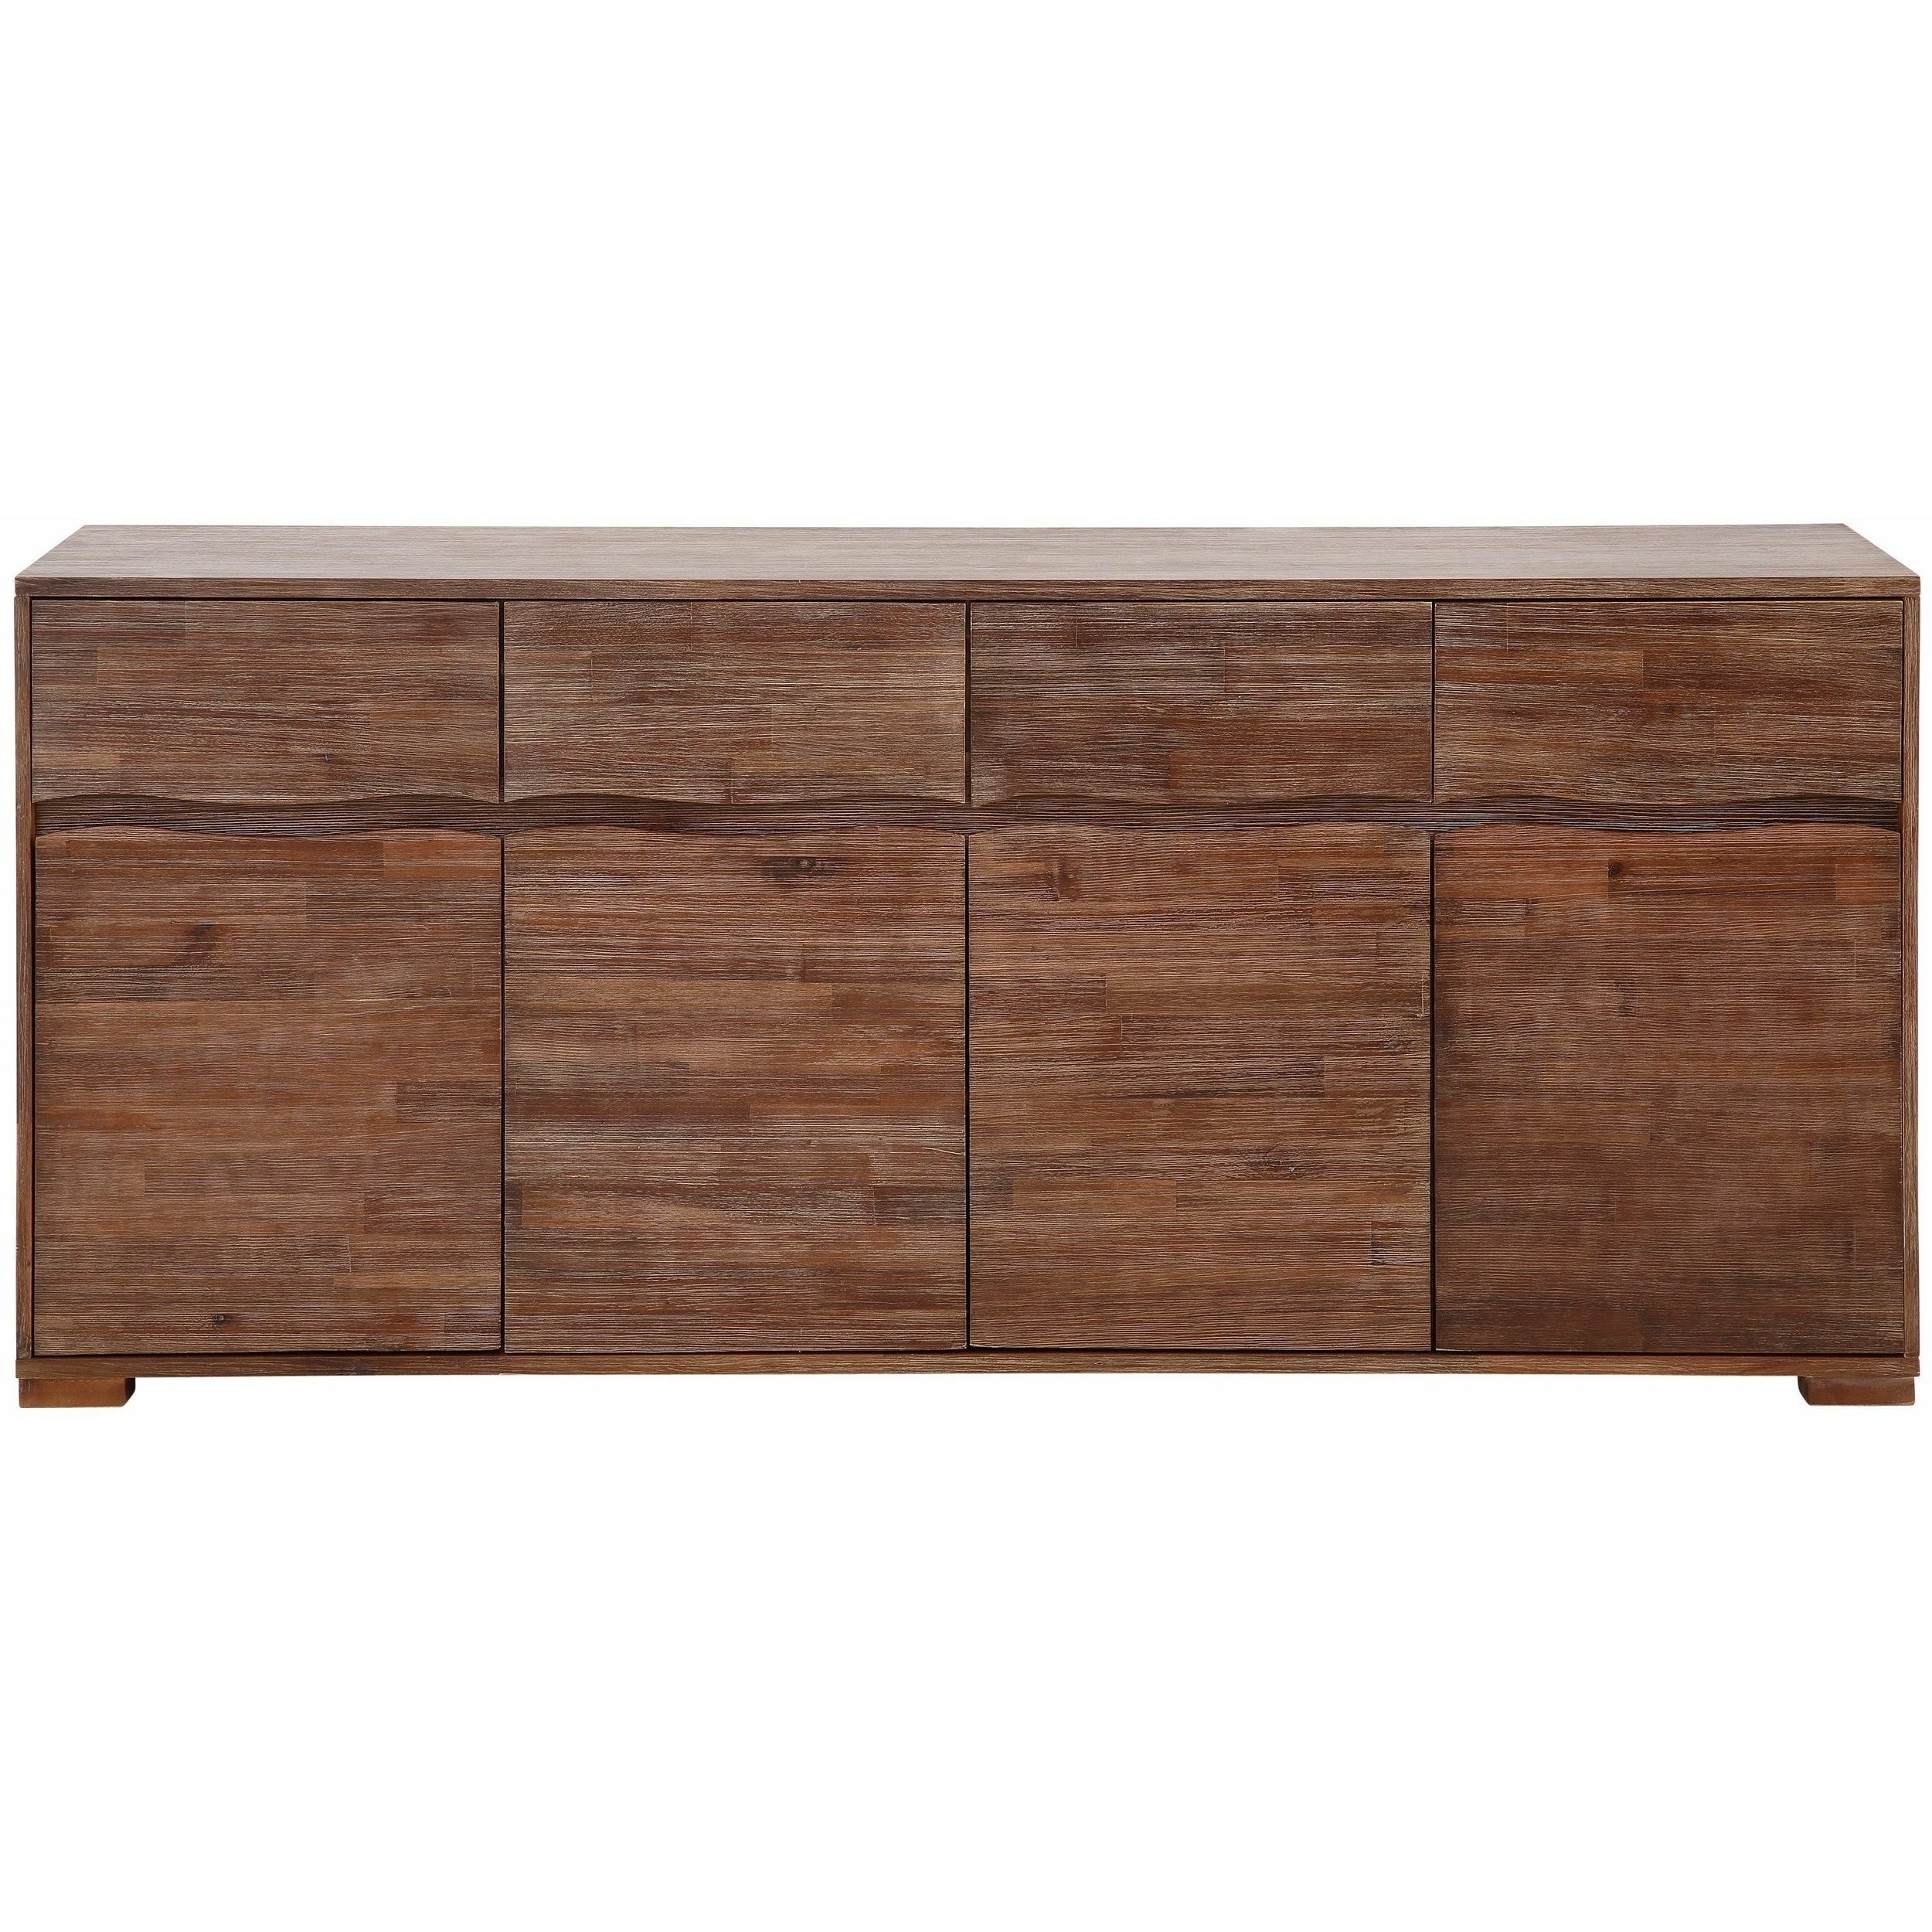 Featured Photo of Acacia Wood 4 Door Sideboards